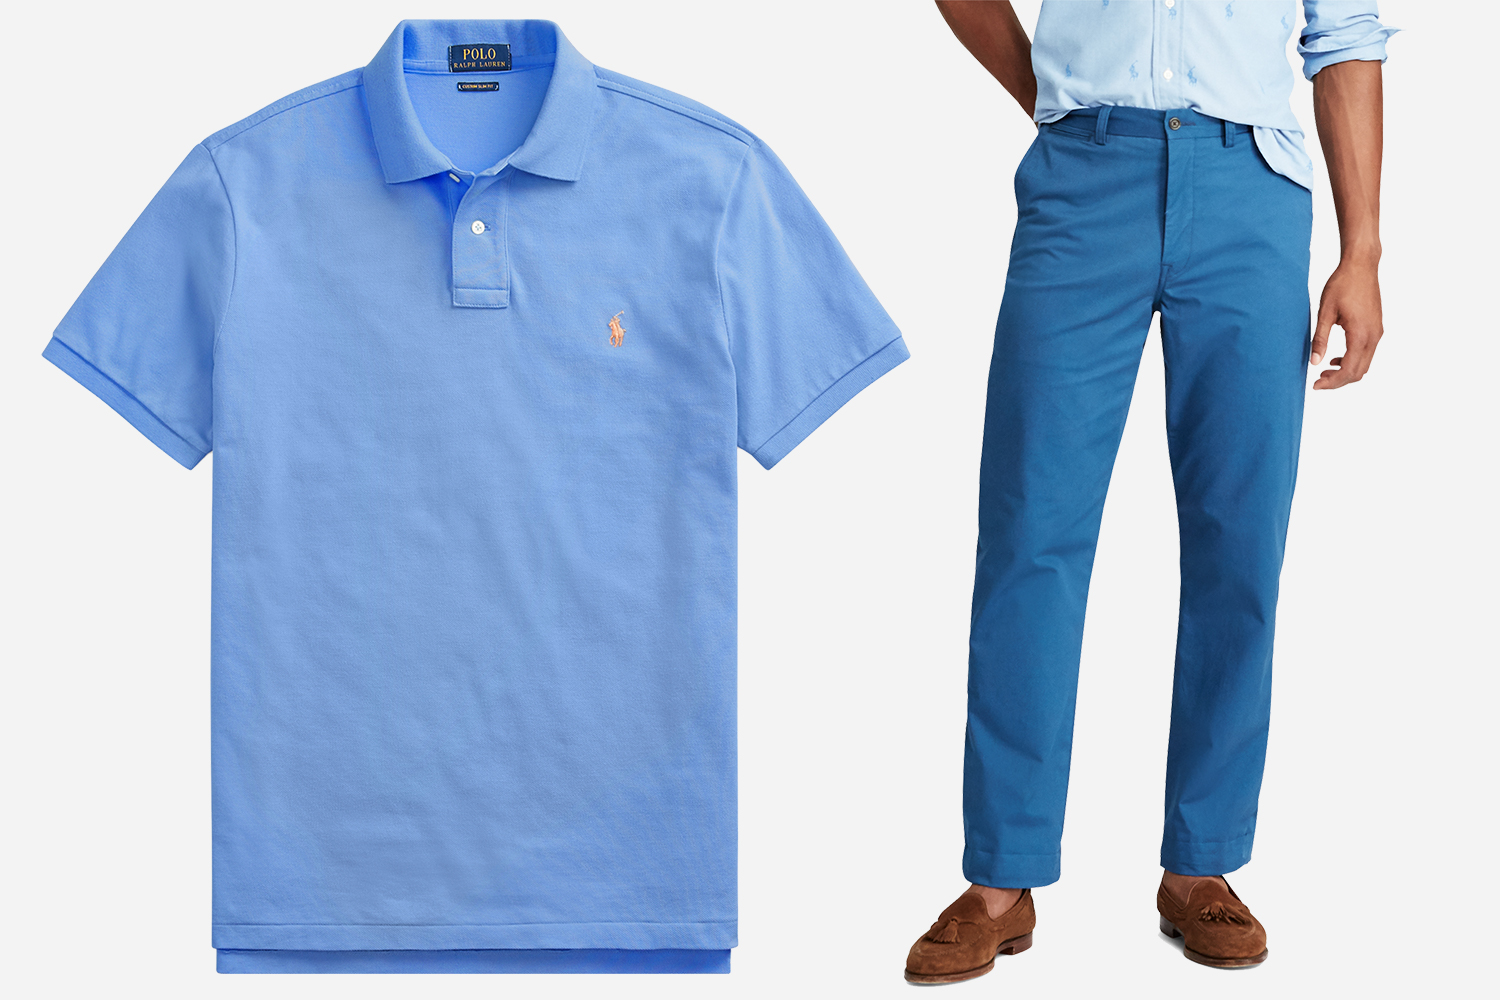 Ralph Lauren Polos and Chinos